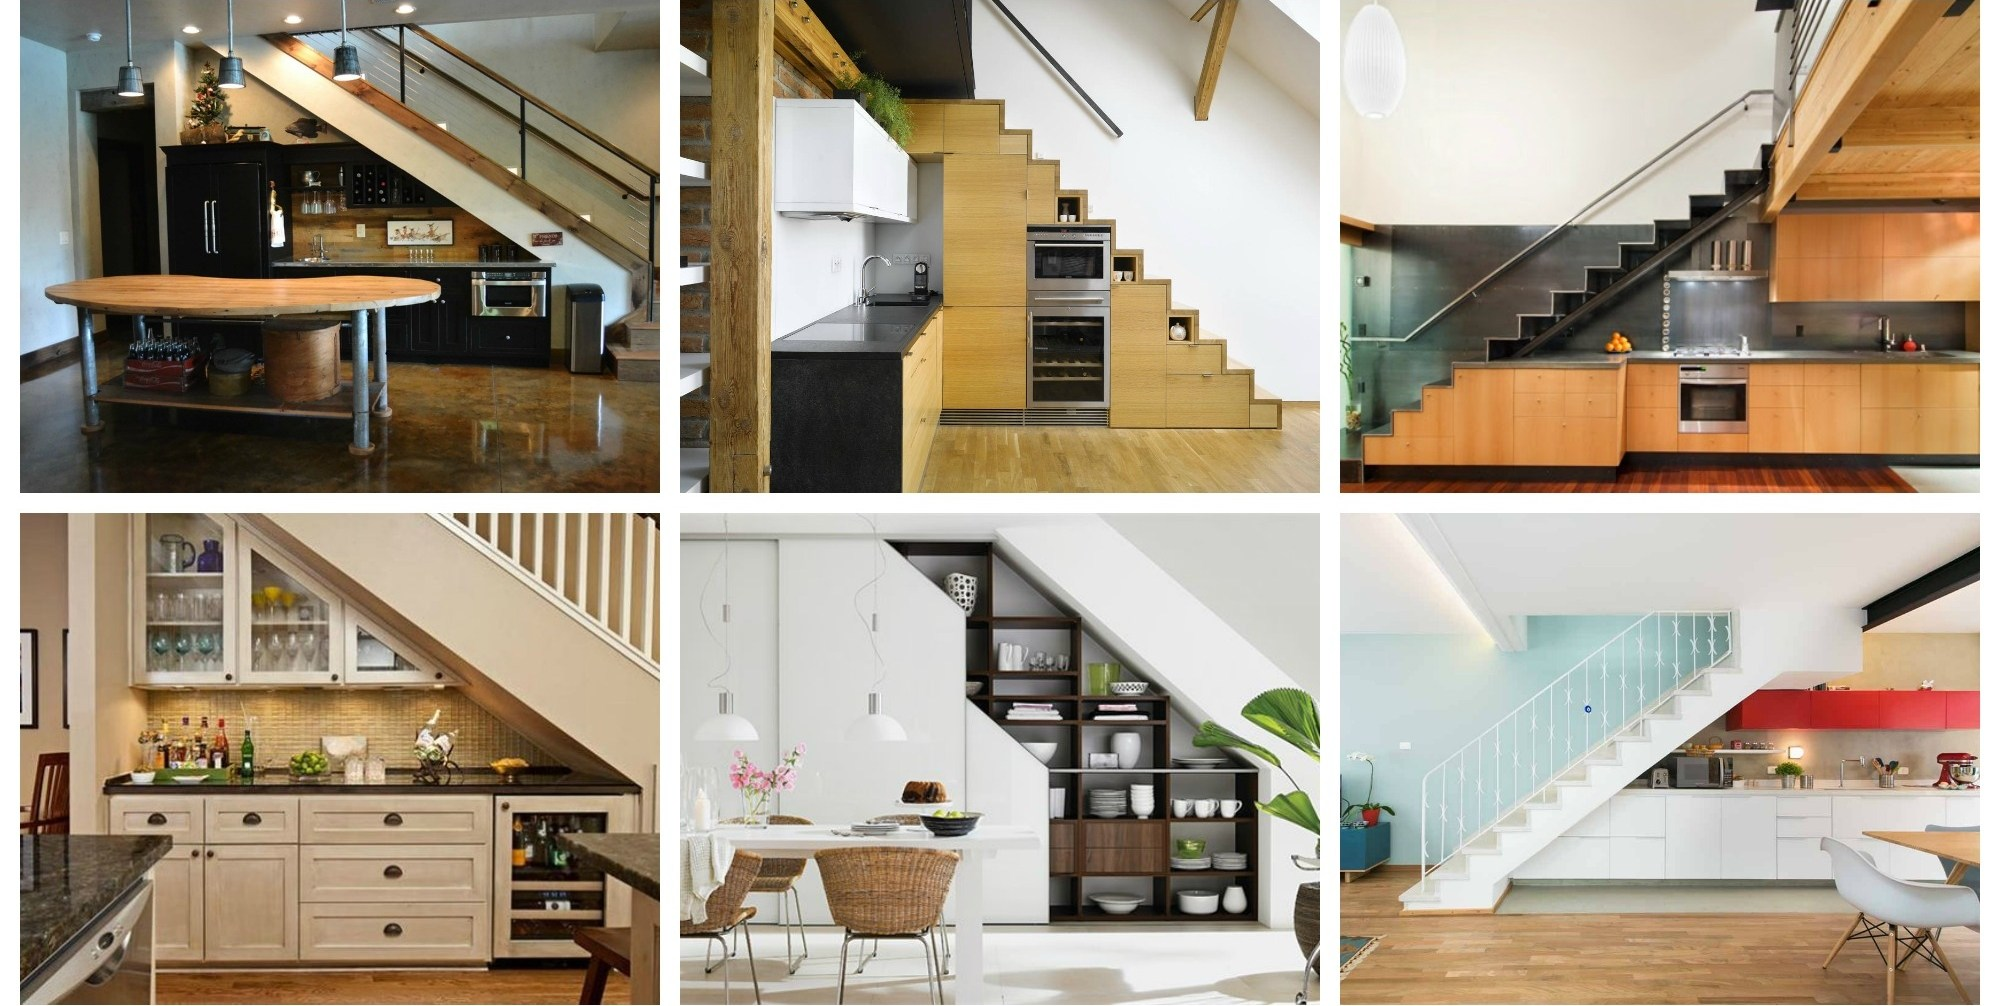 19 Space Saving Under Stairs Kitchens You Need To See | Kitchen Under Stairs Design | Cupboard | Living Room | Wet Bar | Basement Renovations | Staircase Storage